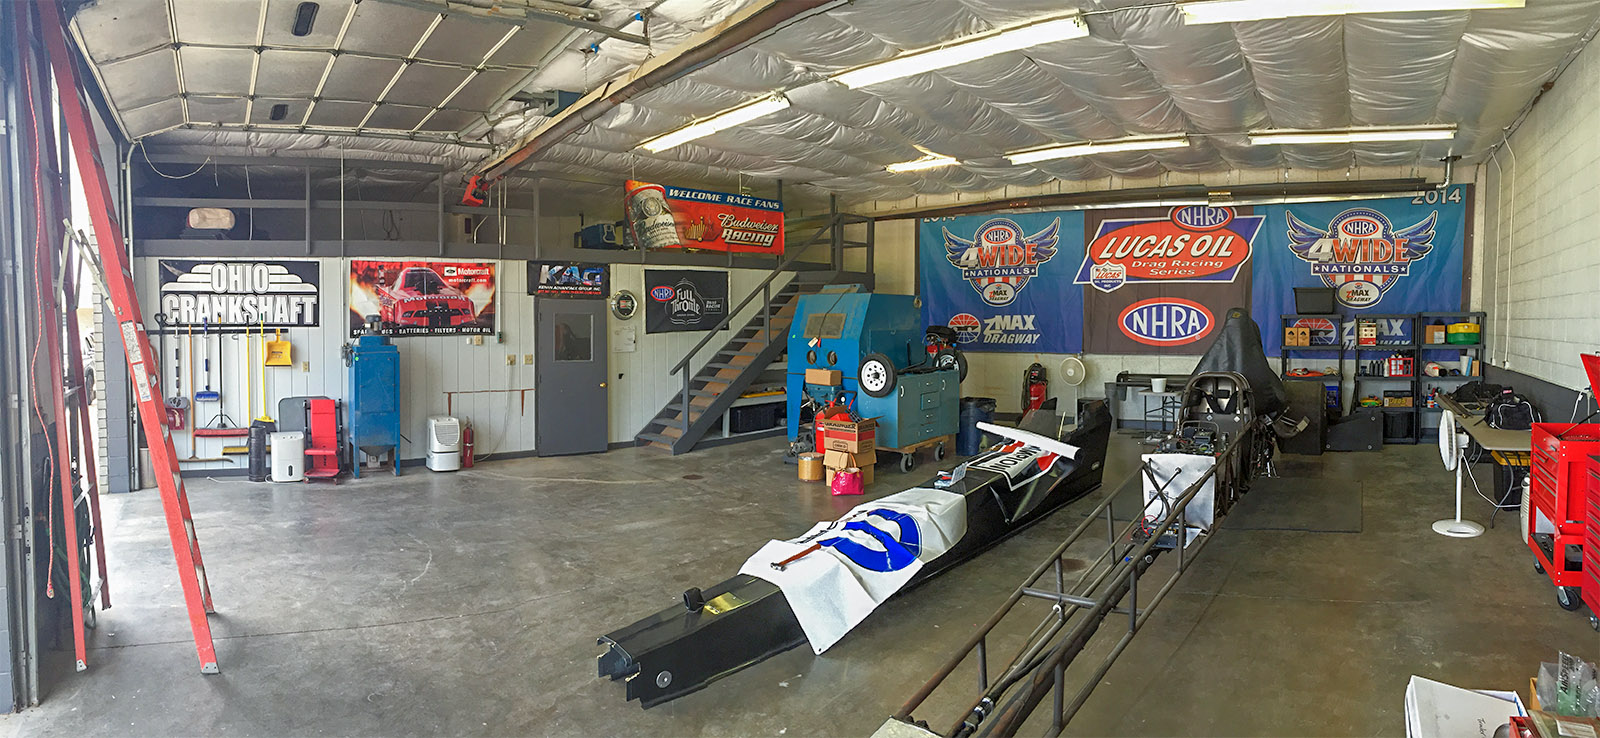 Along with purchasing and beginning work on the new car, Michalek Brothers Racing has been busy setting up a new centrally located race shop.